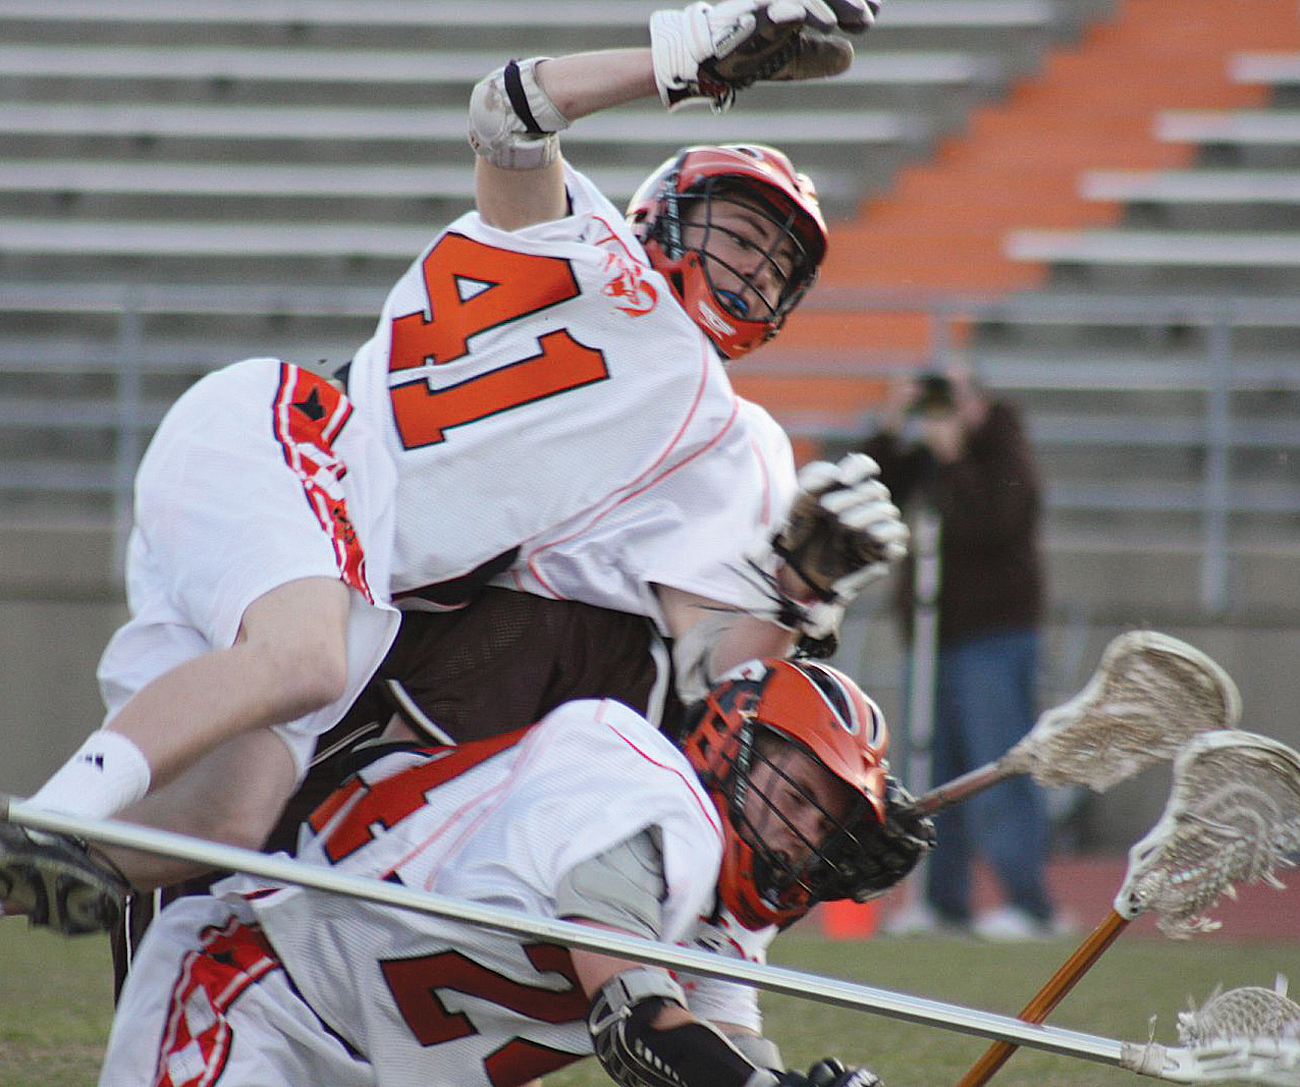 Brandon Emmons (#41) goes airborne after an illegal push from behind by a Holt player, as he and Nicky Howard (#24)